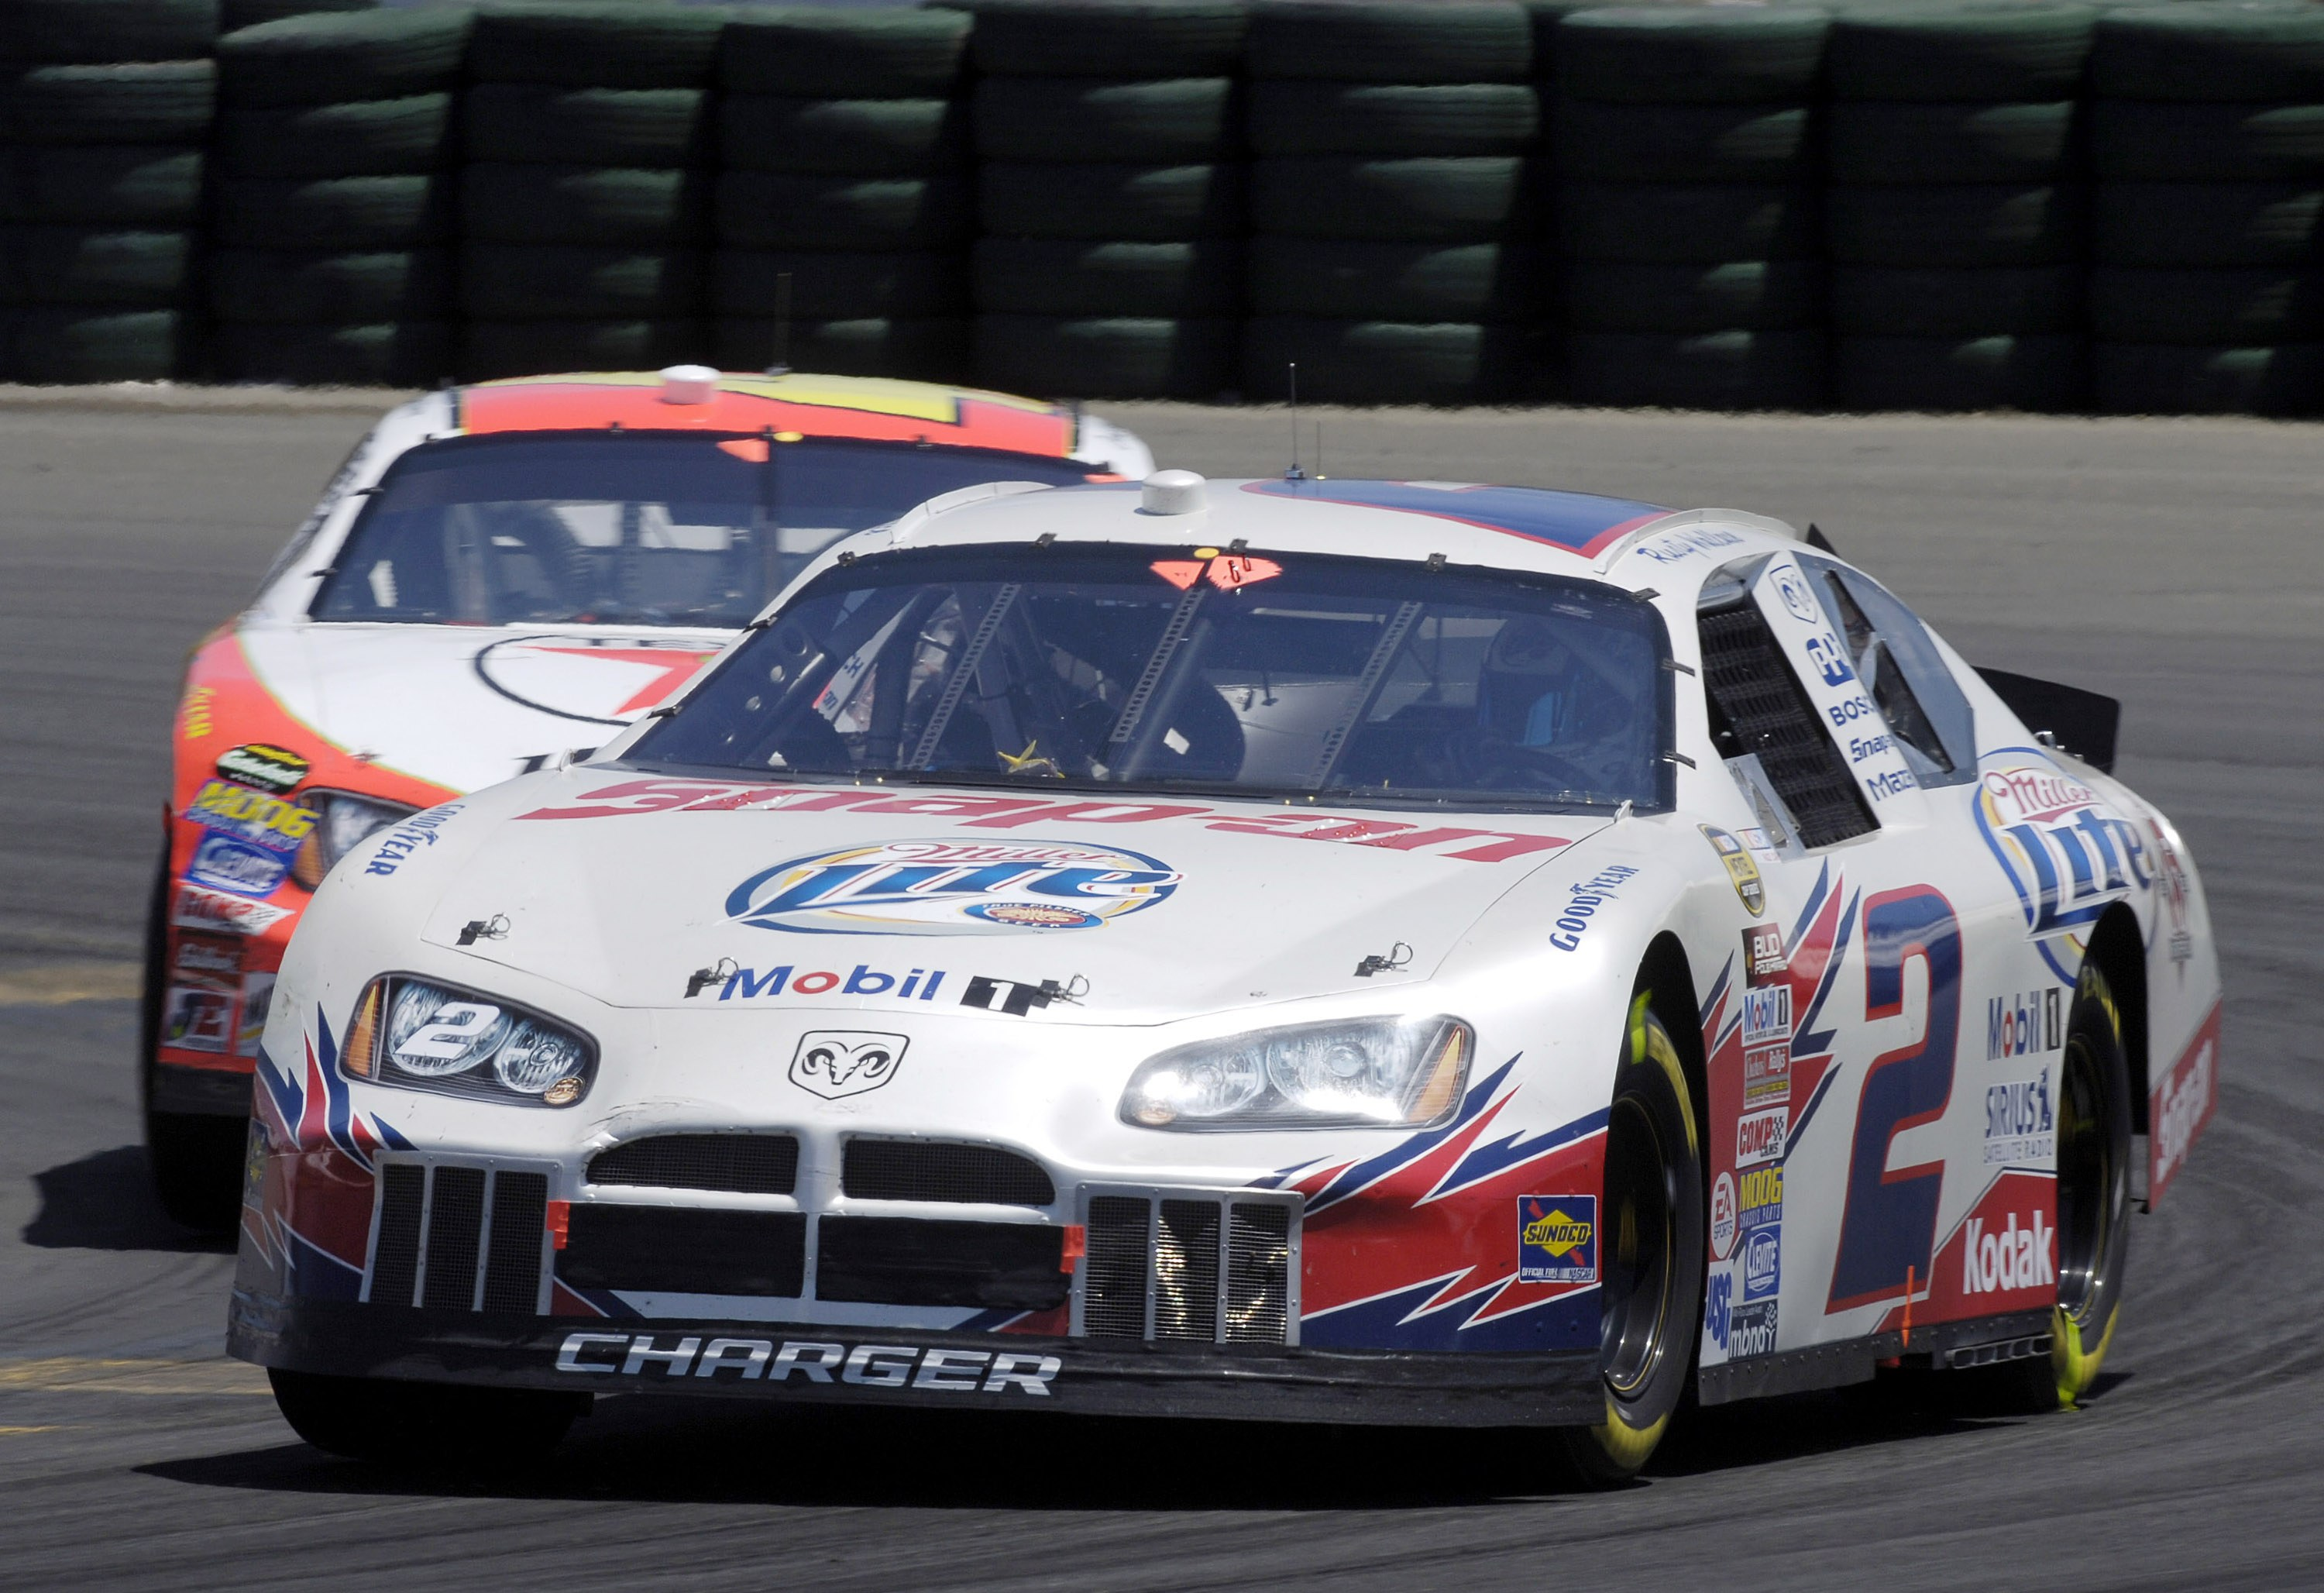 15 Great Rusty Wallace Paint Schemes